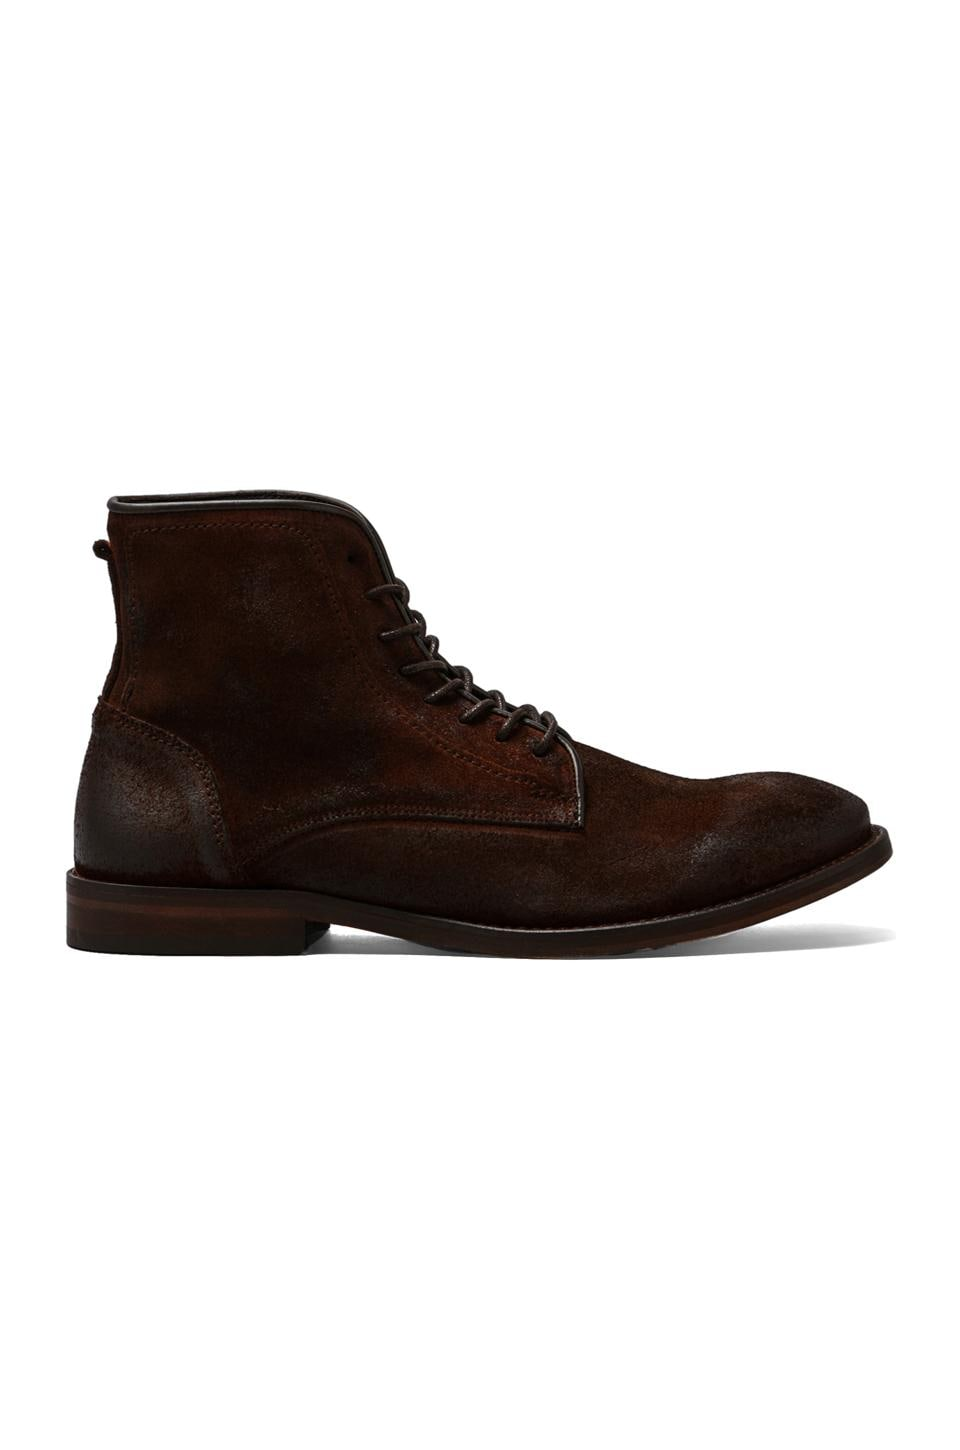 H by Hudson Smyth Boot in Suede Brown